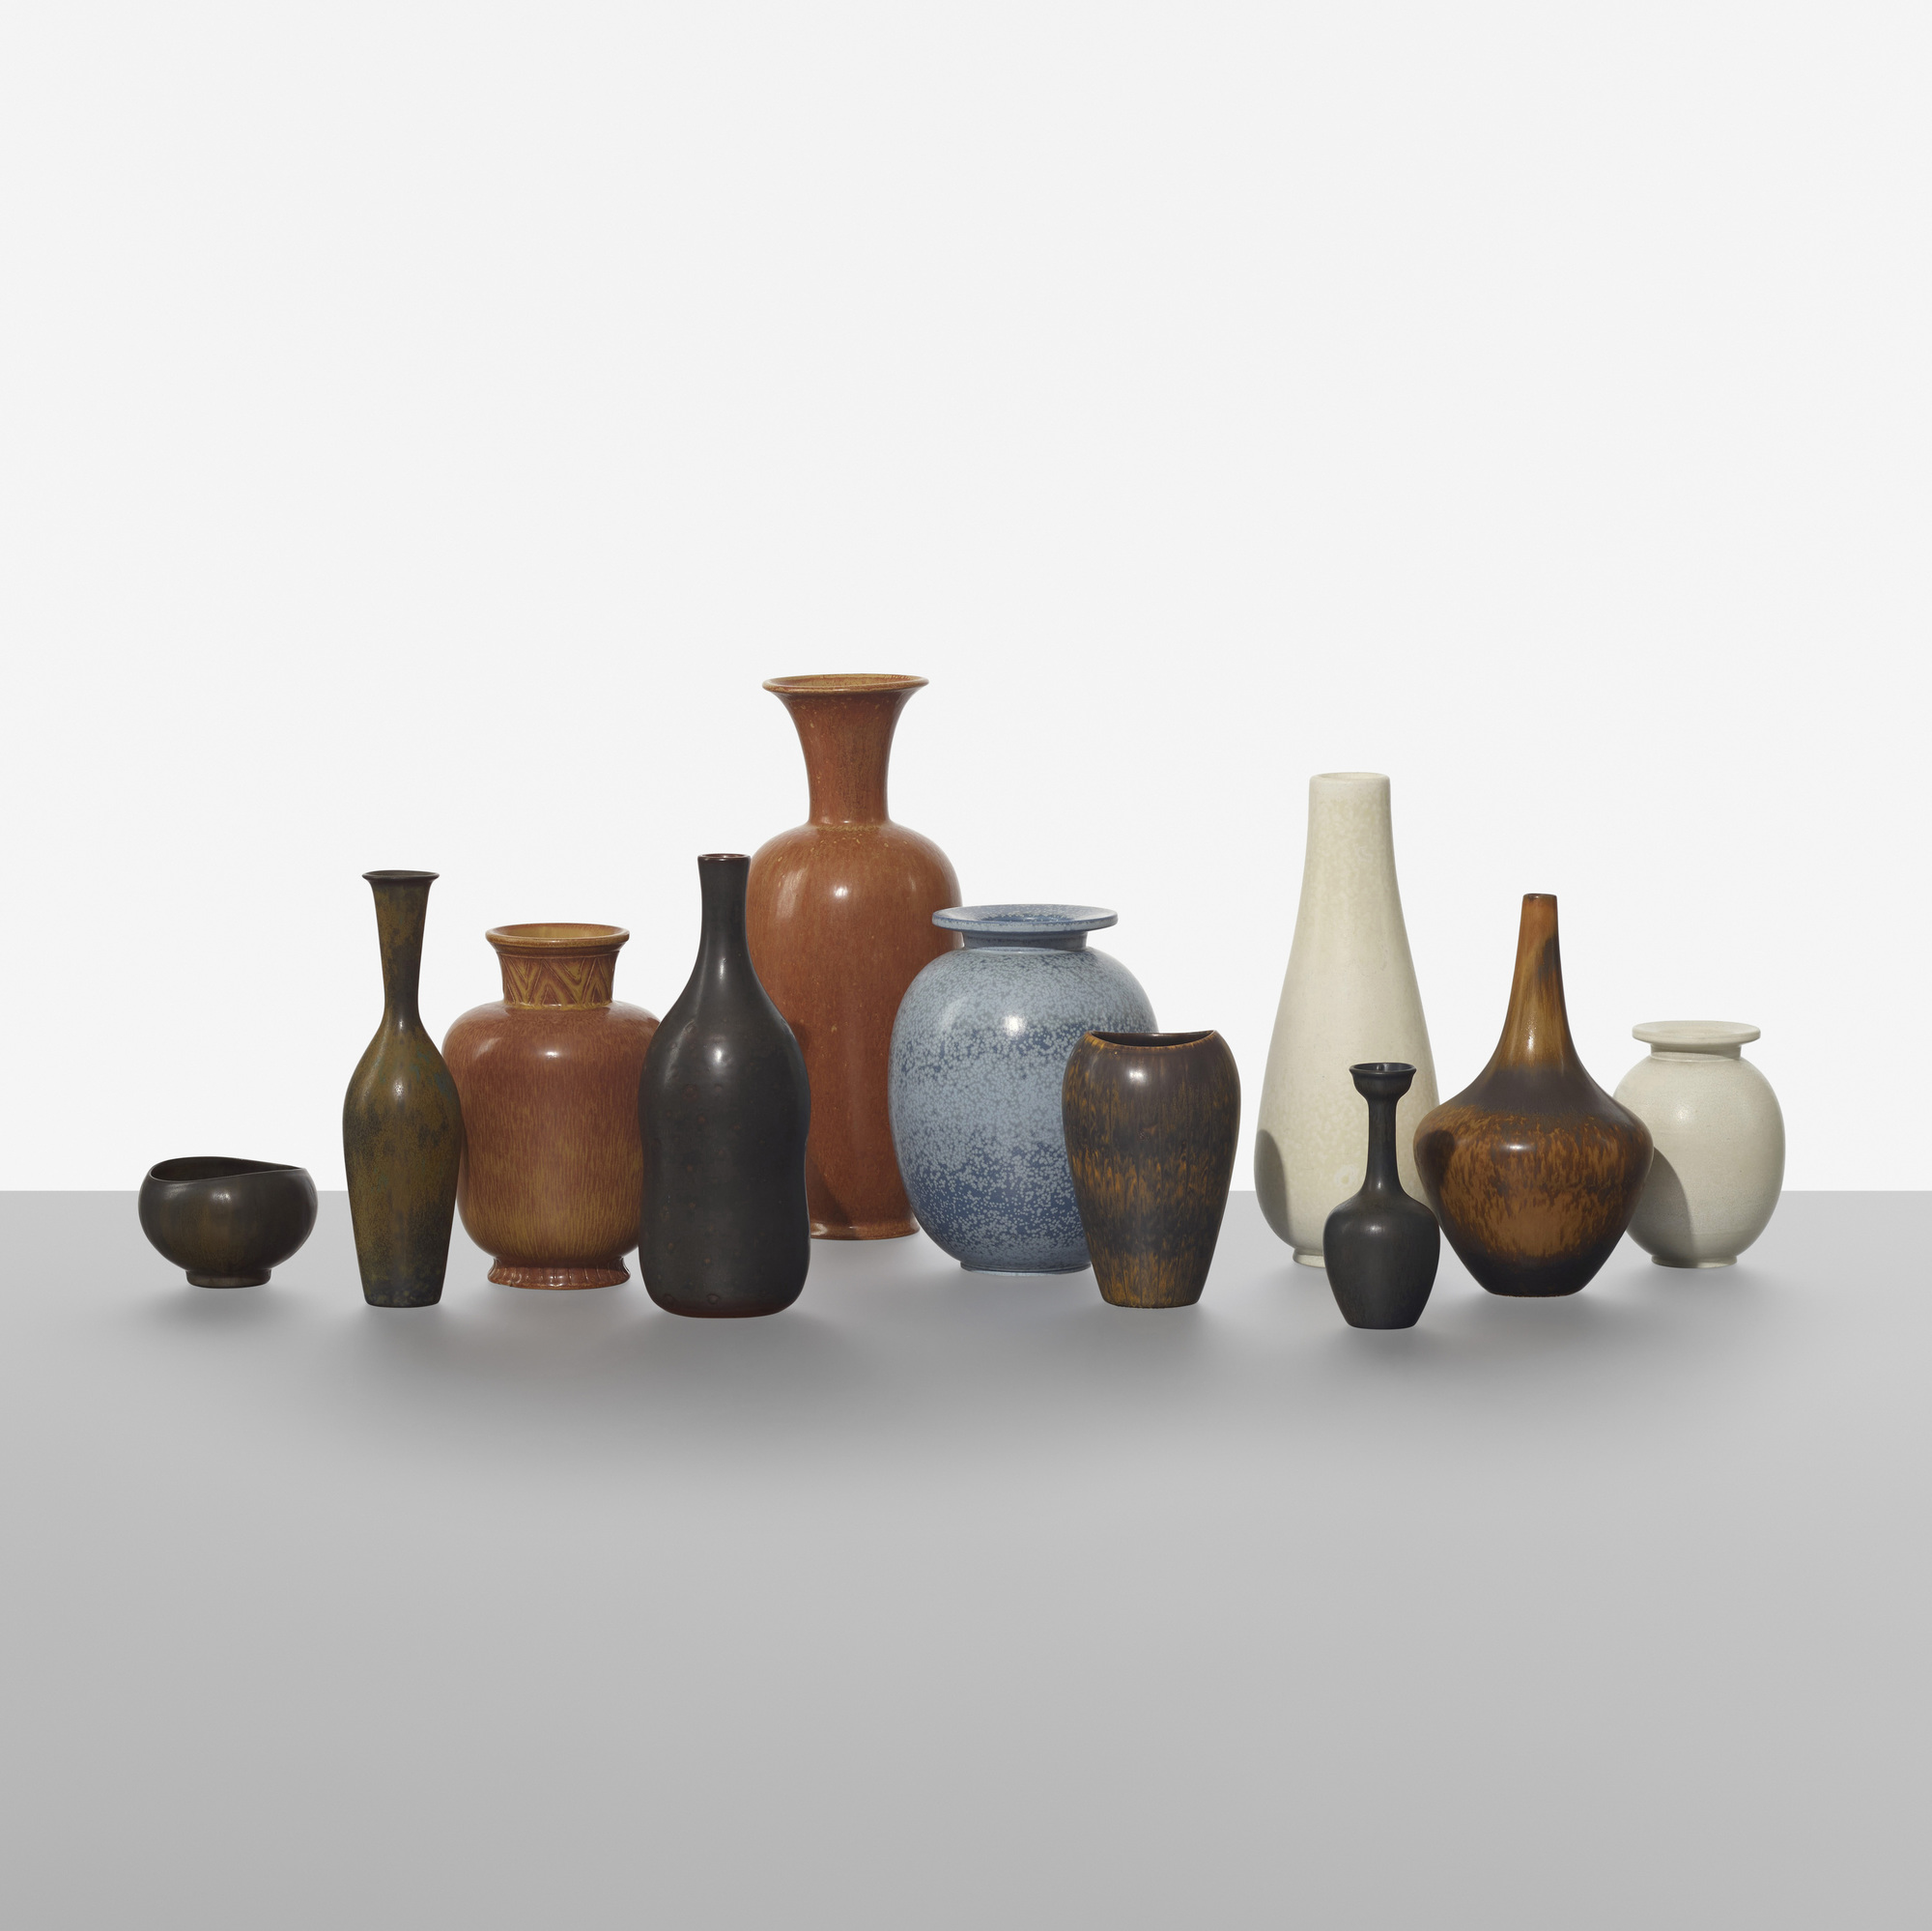 214: Gunnar Nylund / collection of eleven vases (2 of 3)